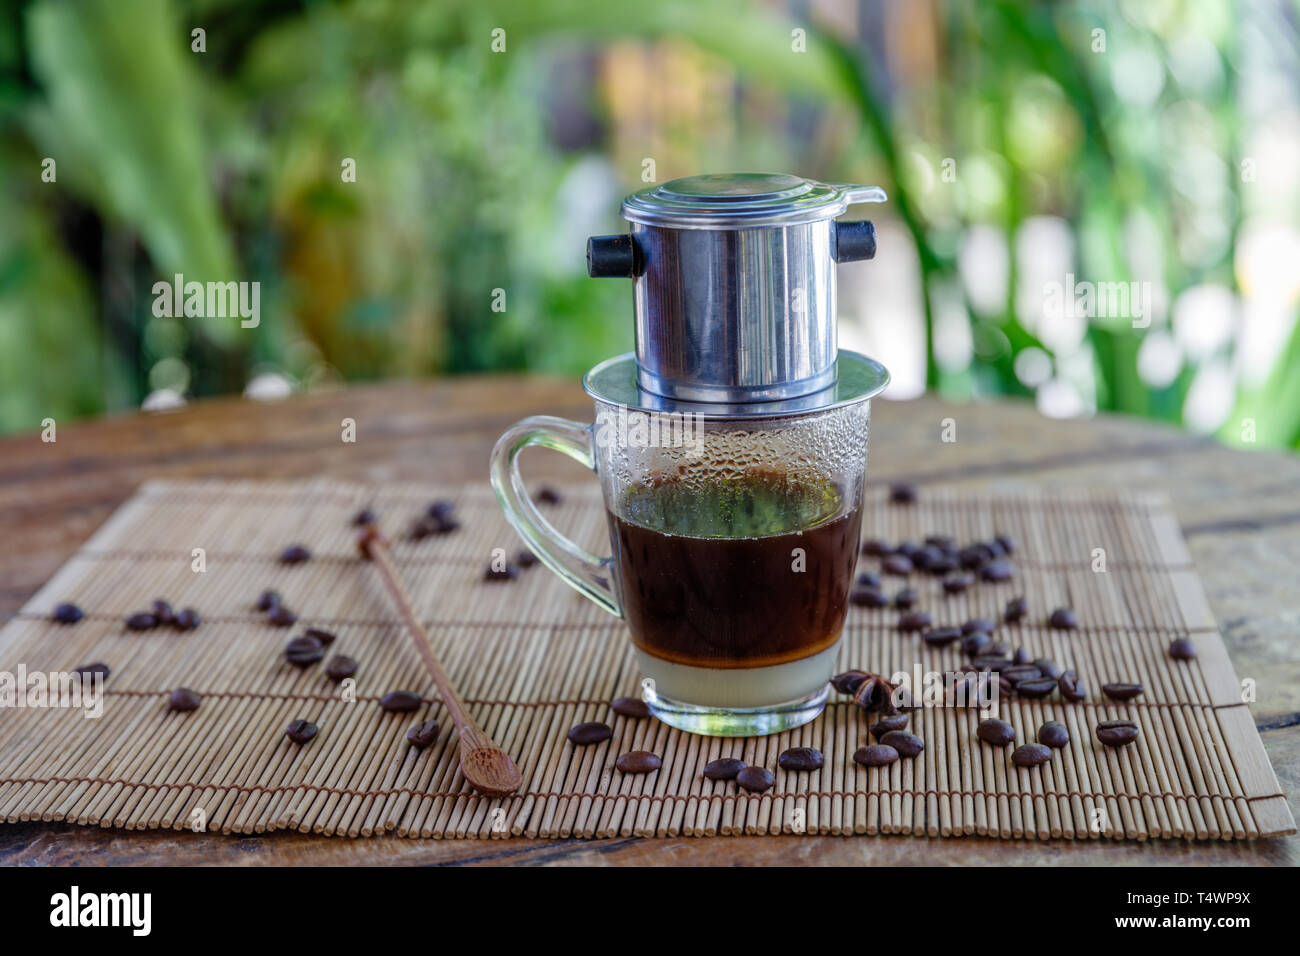 Vietnamese Drip Filter High Resolution Stock Photography And Images Alamy